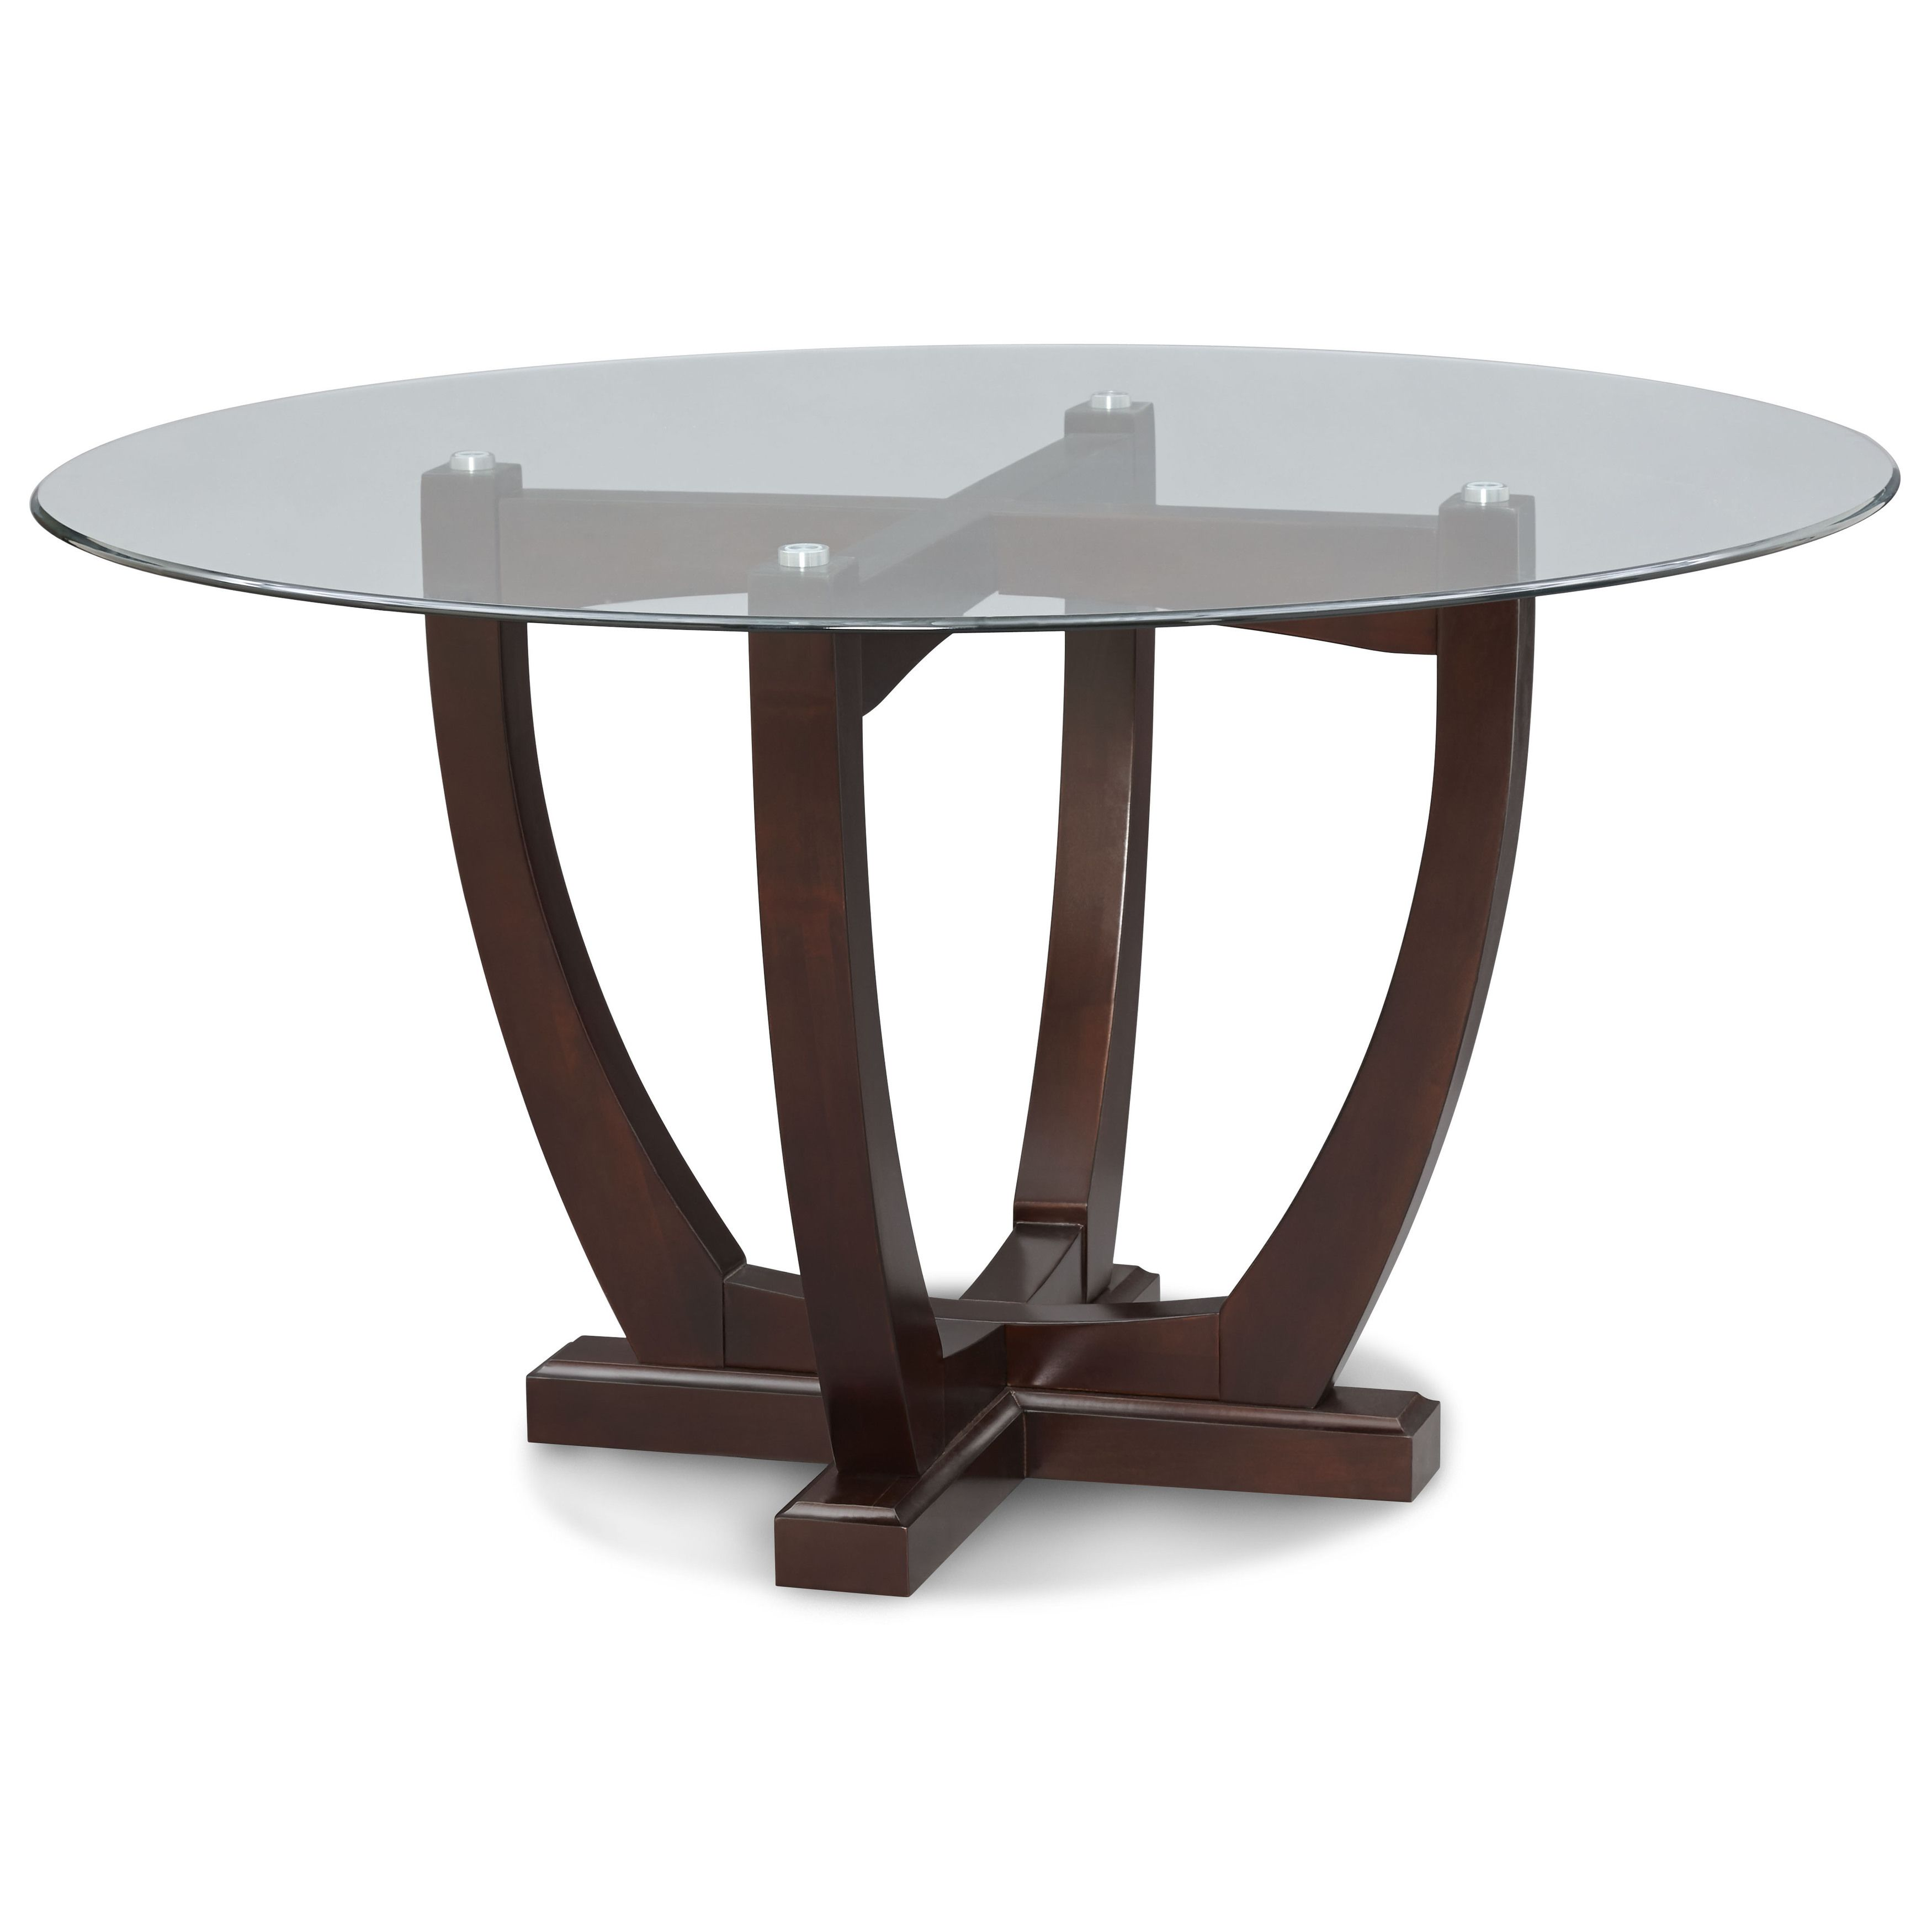 The 54 Inch Round Table Top Is Made Of Tempered Glass. The Unique Design